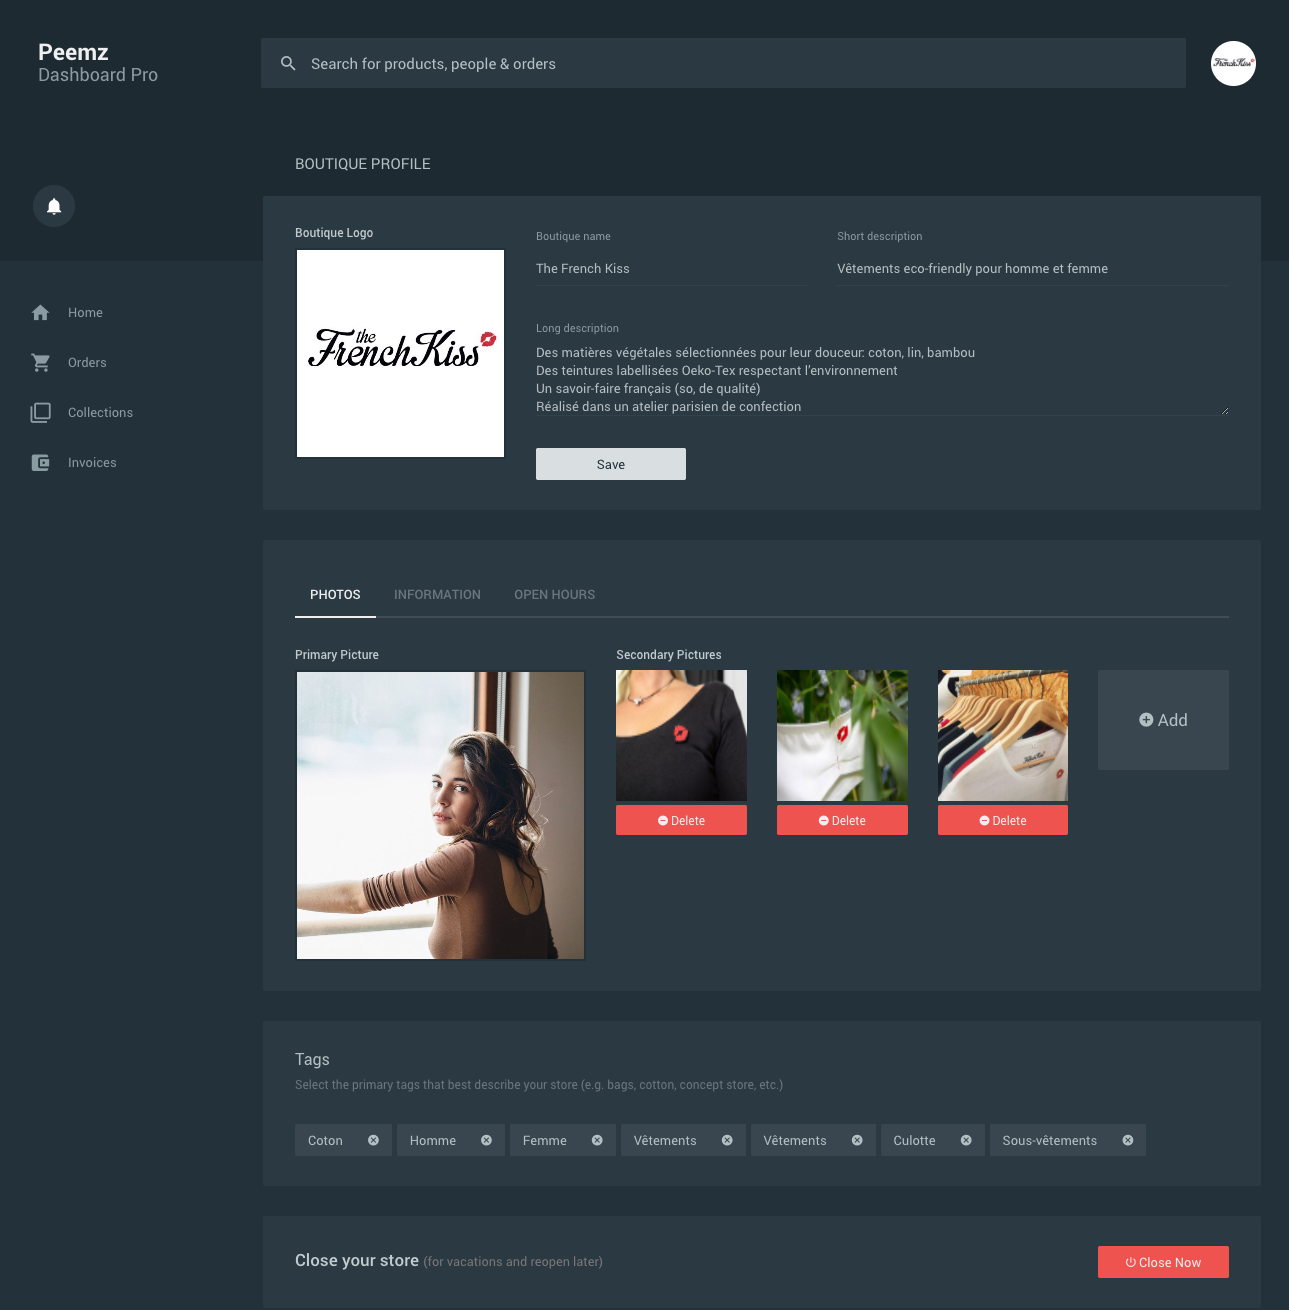 Peemz Boutique Dashboard